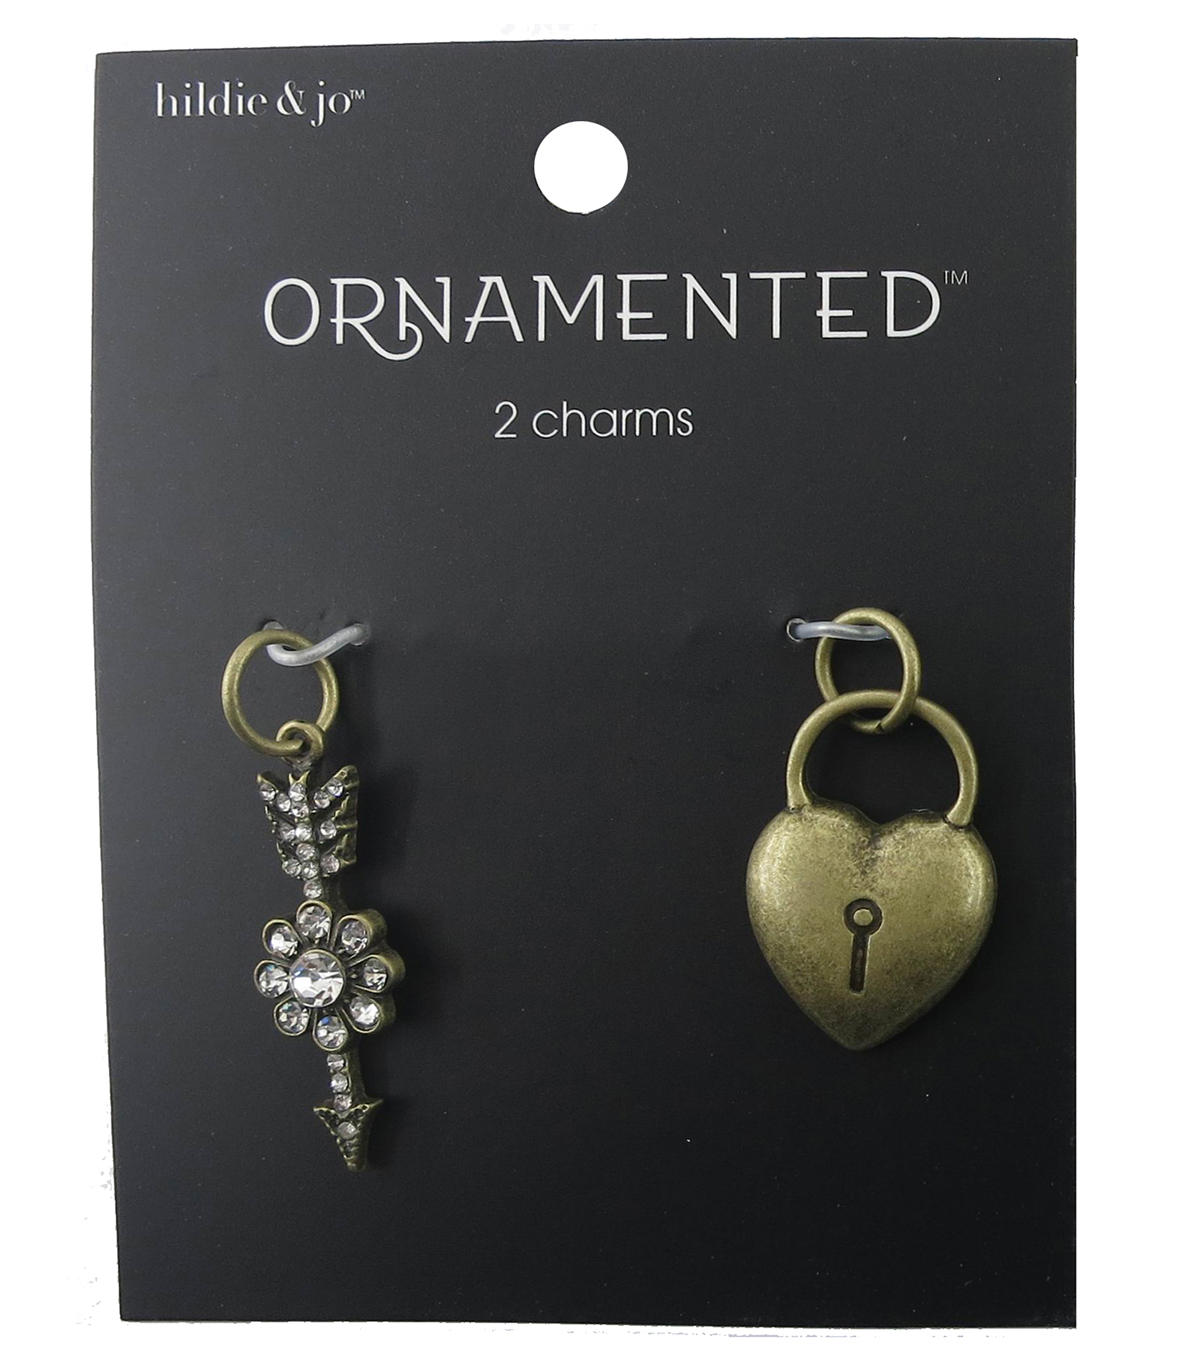 hildie & jo™ Ornamented Heart Lock & Jeweled Arrow Charms